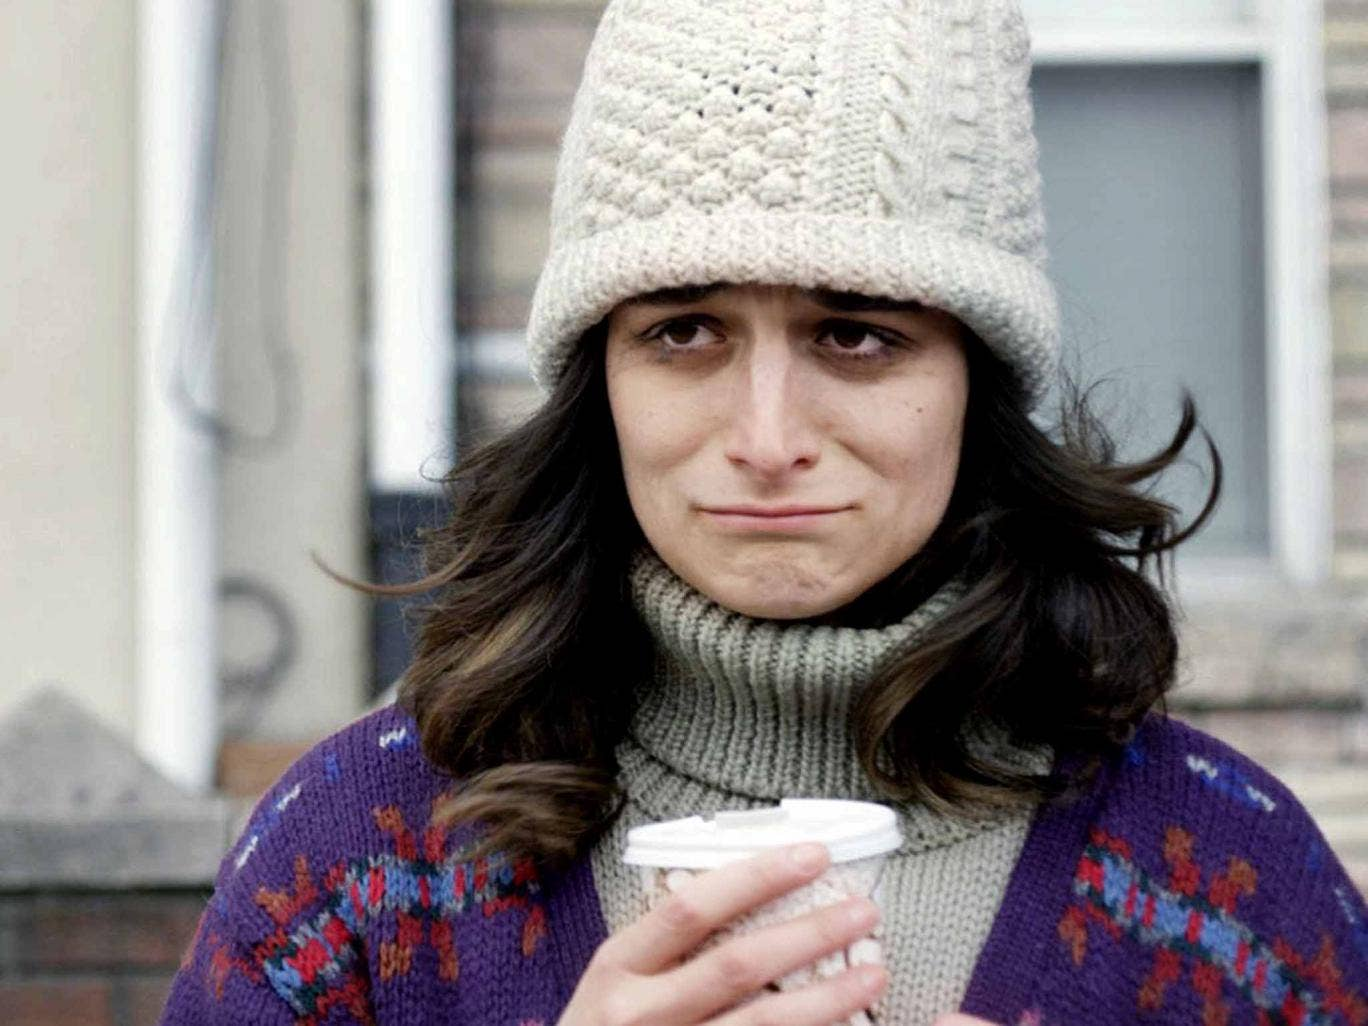 Single-minded: in the film 'Obvious Child', Jenny Slate plays a woman who doesn't feel a great stigma attached to having an abortion